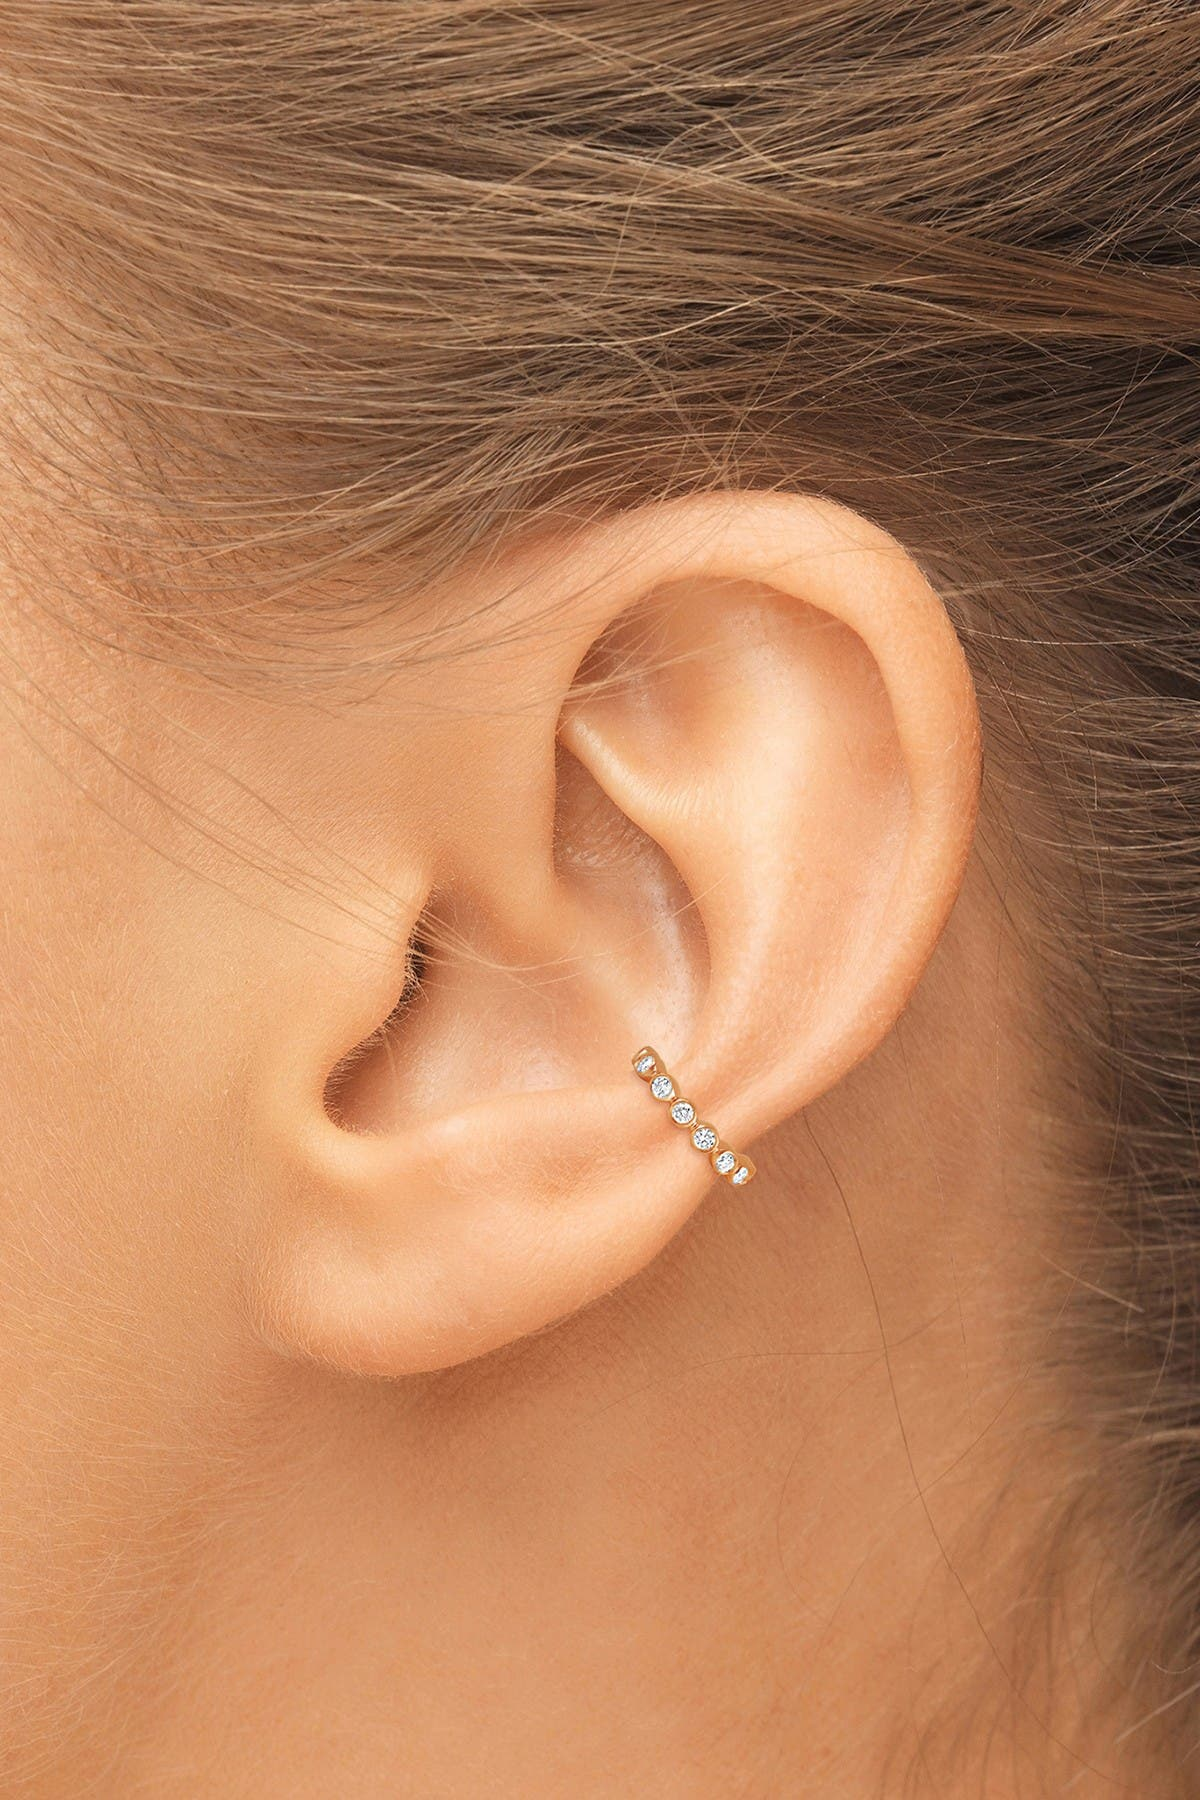 Image of CENTRAL PARK JEWELRY Single Row Bezel Cuff Earring